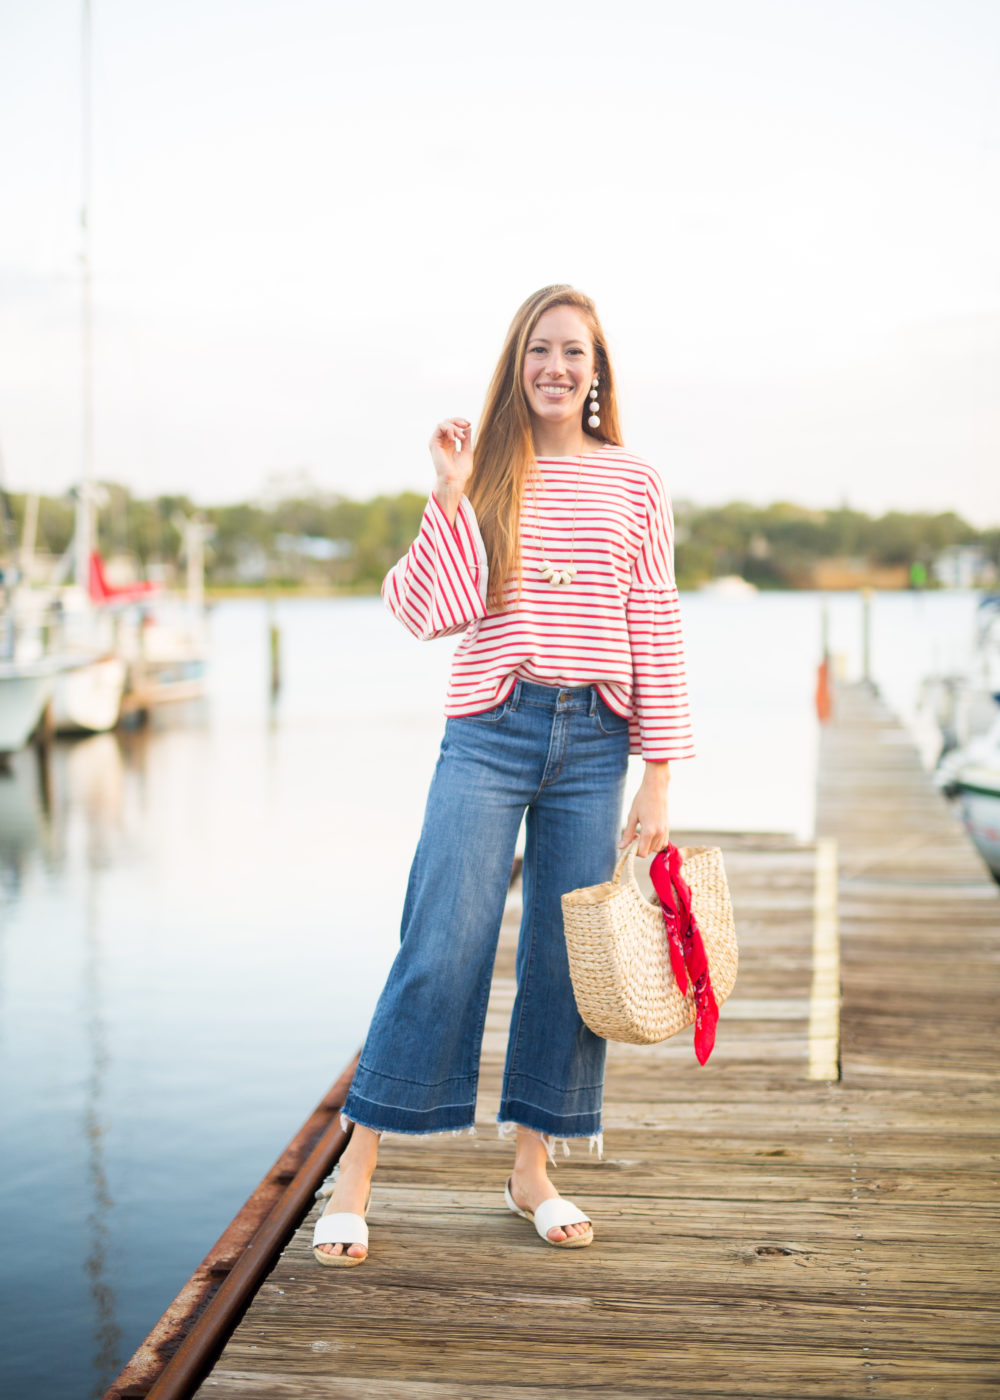 Classic Fall Outfit, Wearing Striped Top, Wide Leg Pants and Straw Bag | Sunshine Style